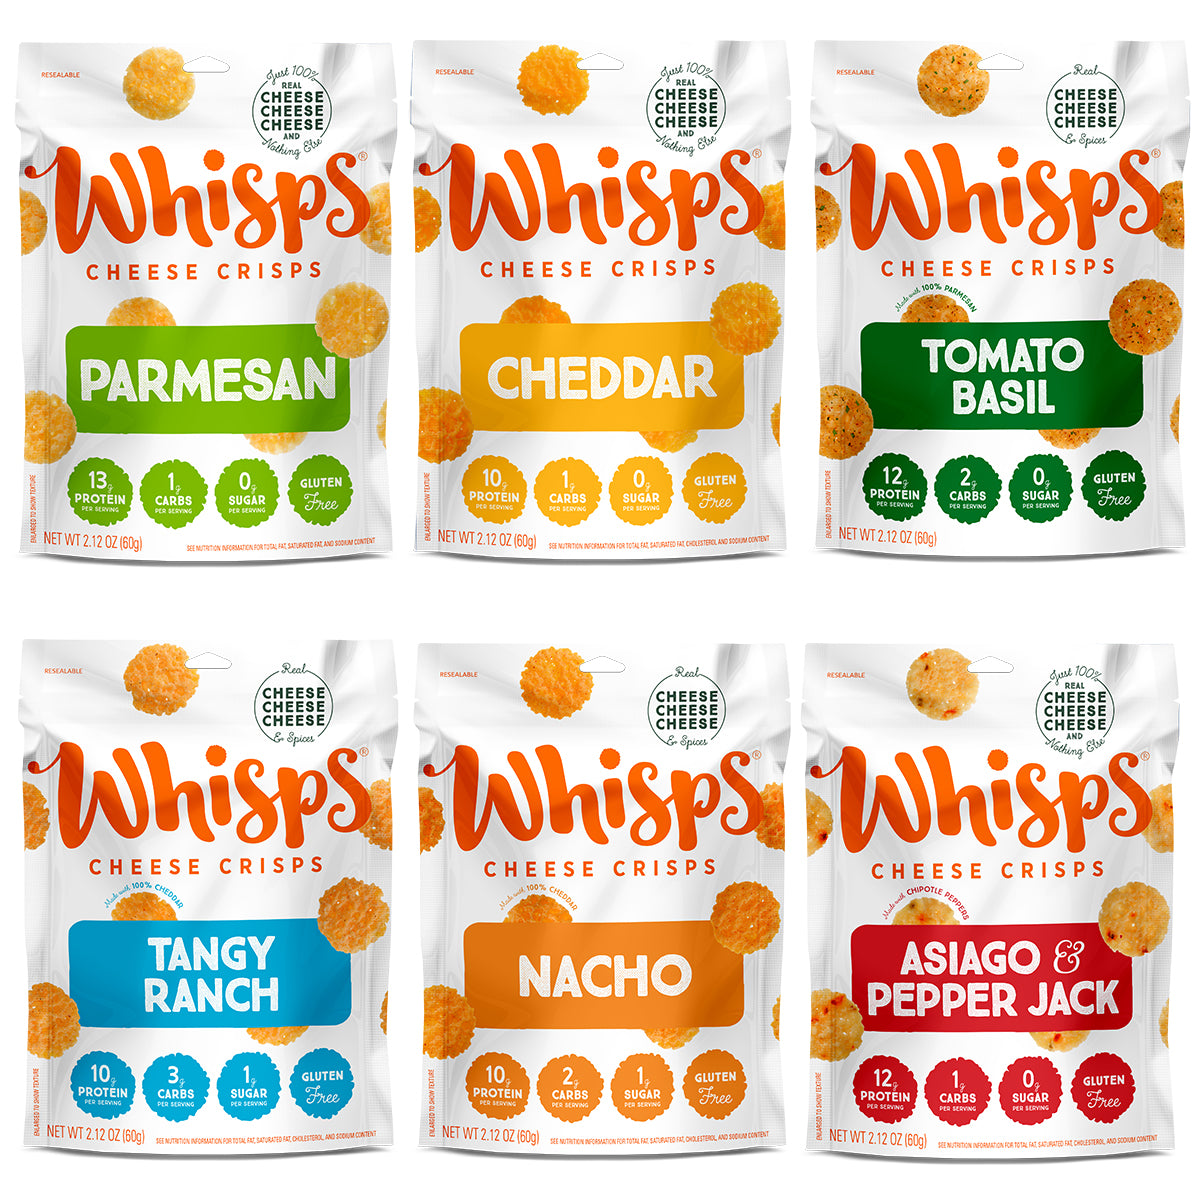 Buy Whisps Parmesan, Cheddar, Tangy Ranch, Nacho Asiago Pepper Jack, Tomato Basil Variety Pack on Amazon